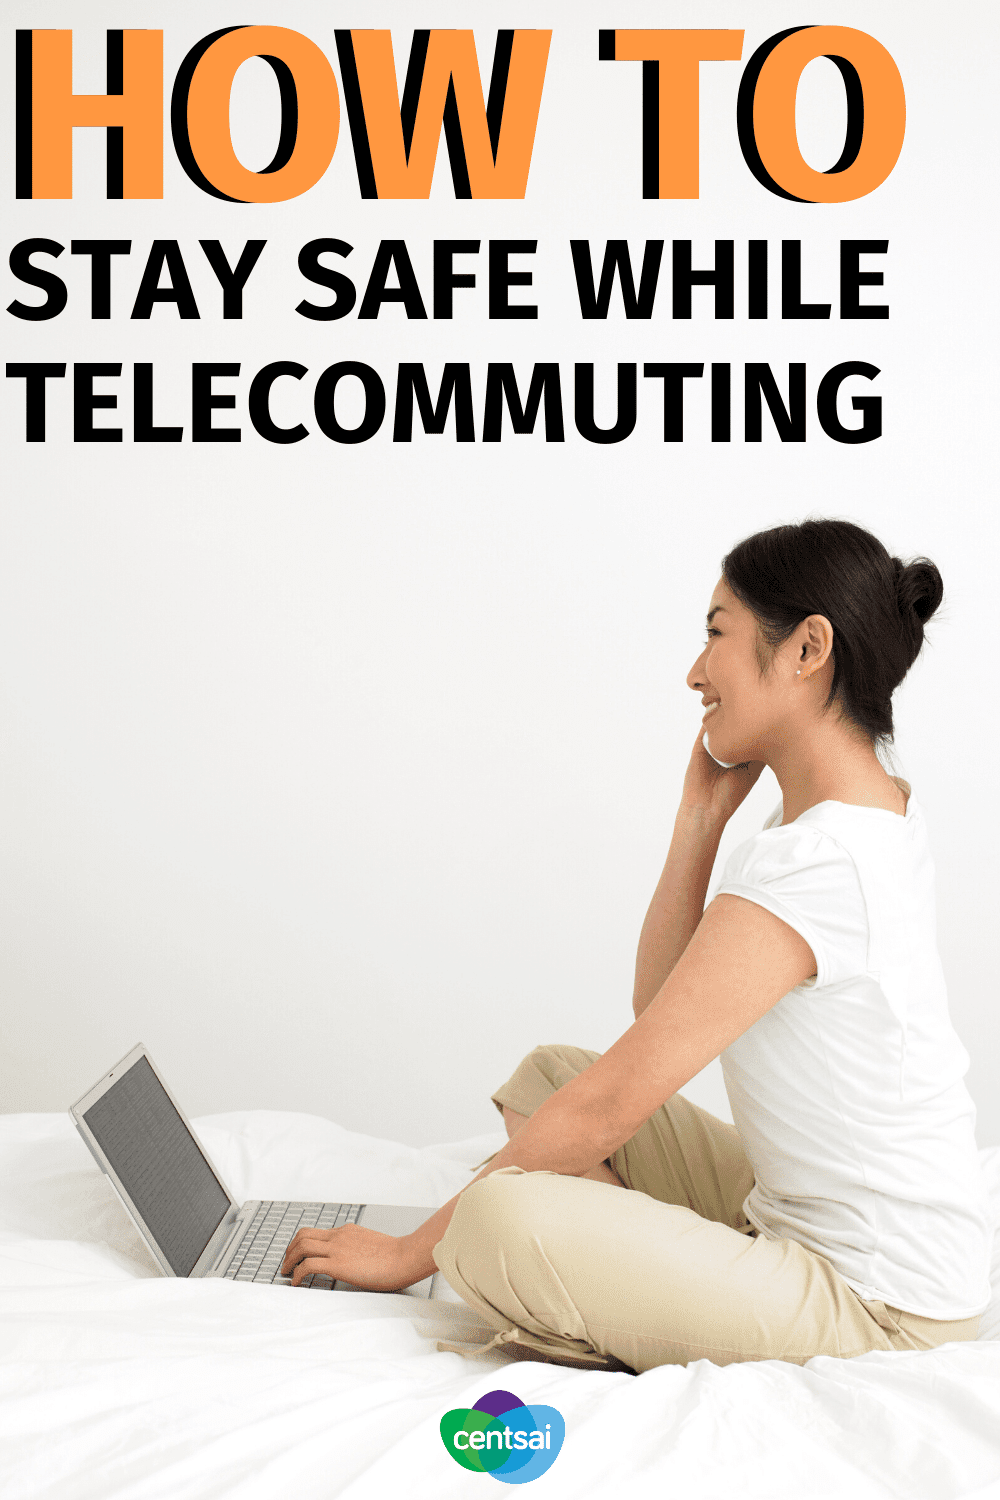 How to Stay Safe While Telecommuting